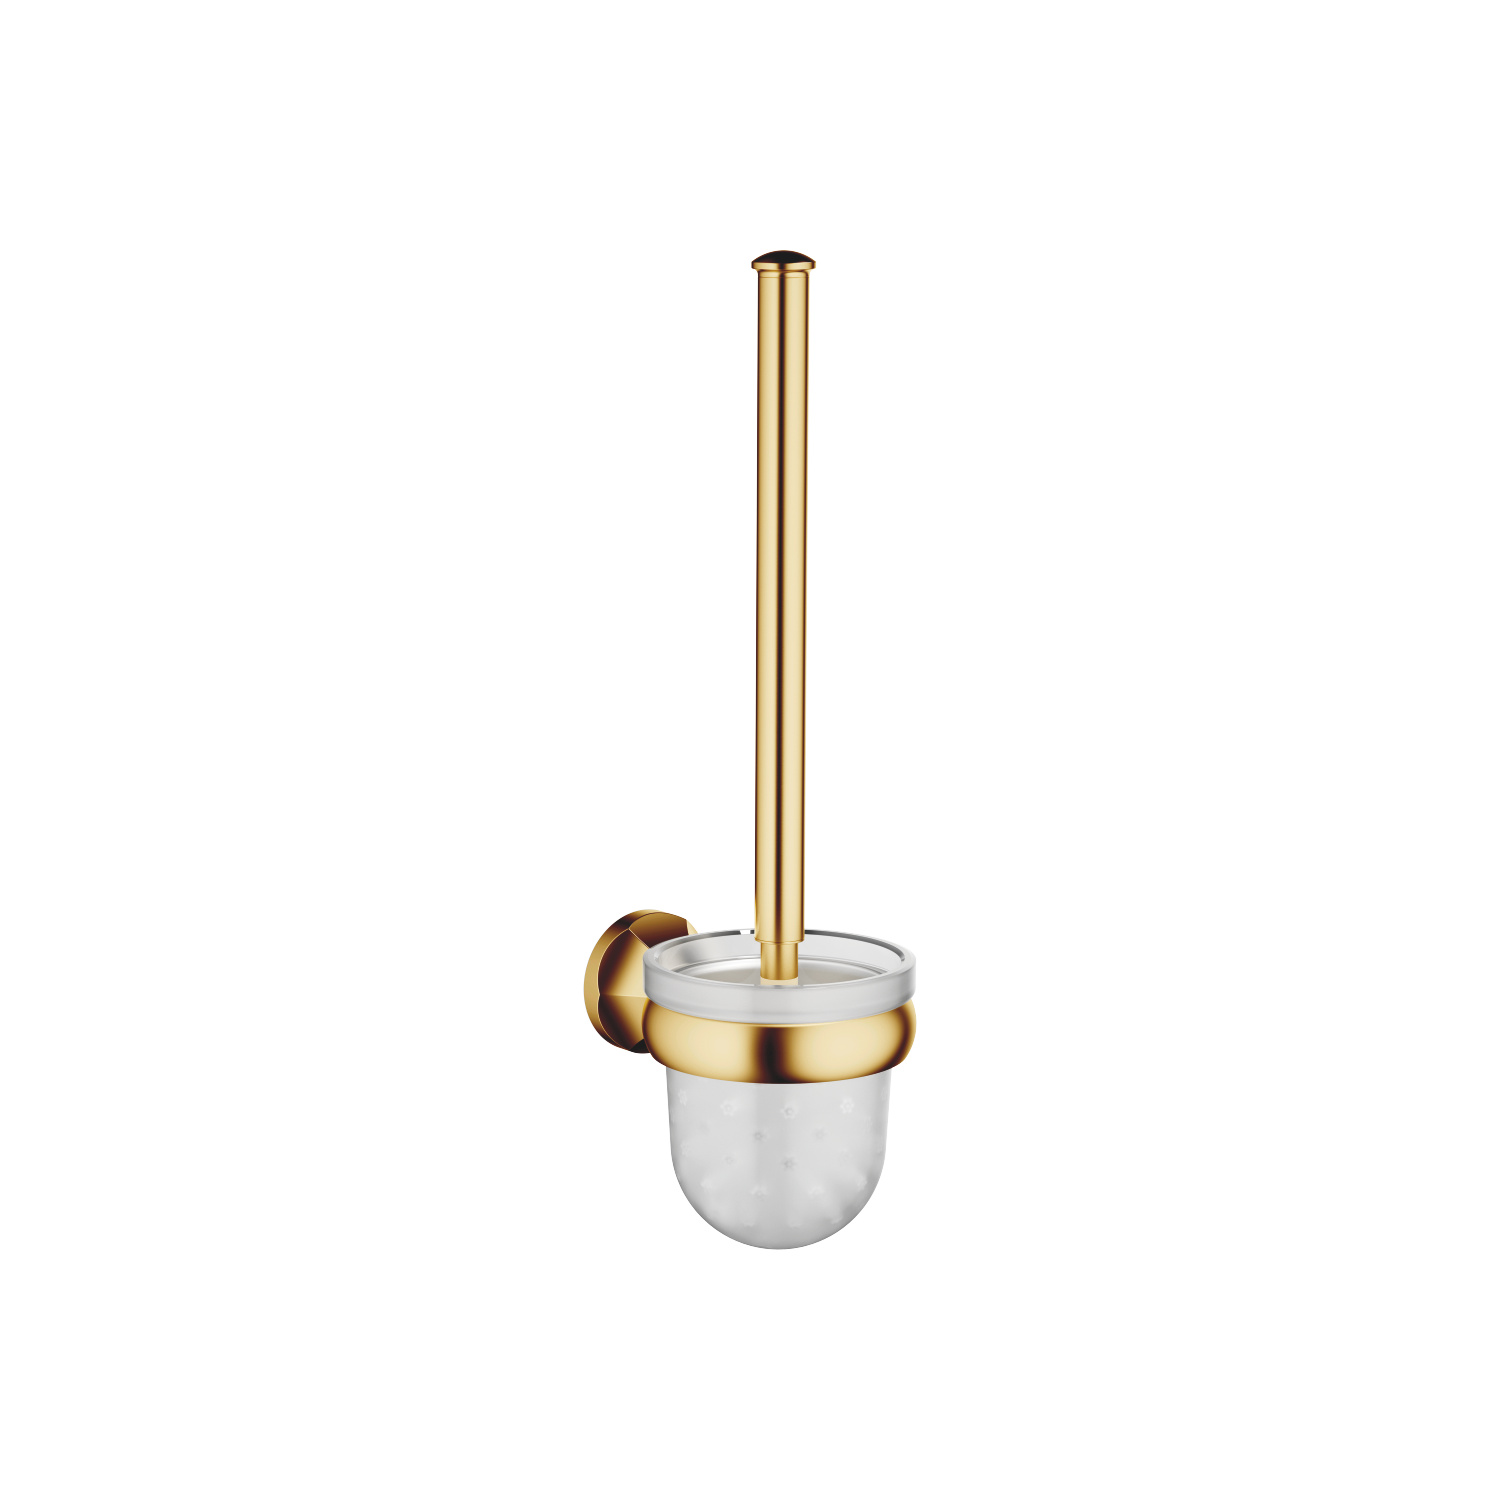 Toilet brush set wall model - brushed Durabrass